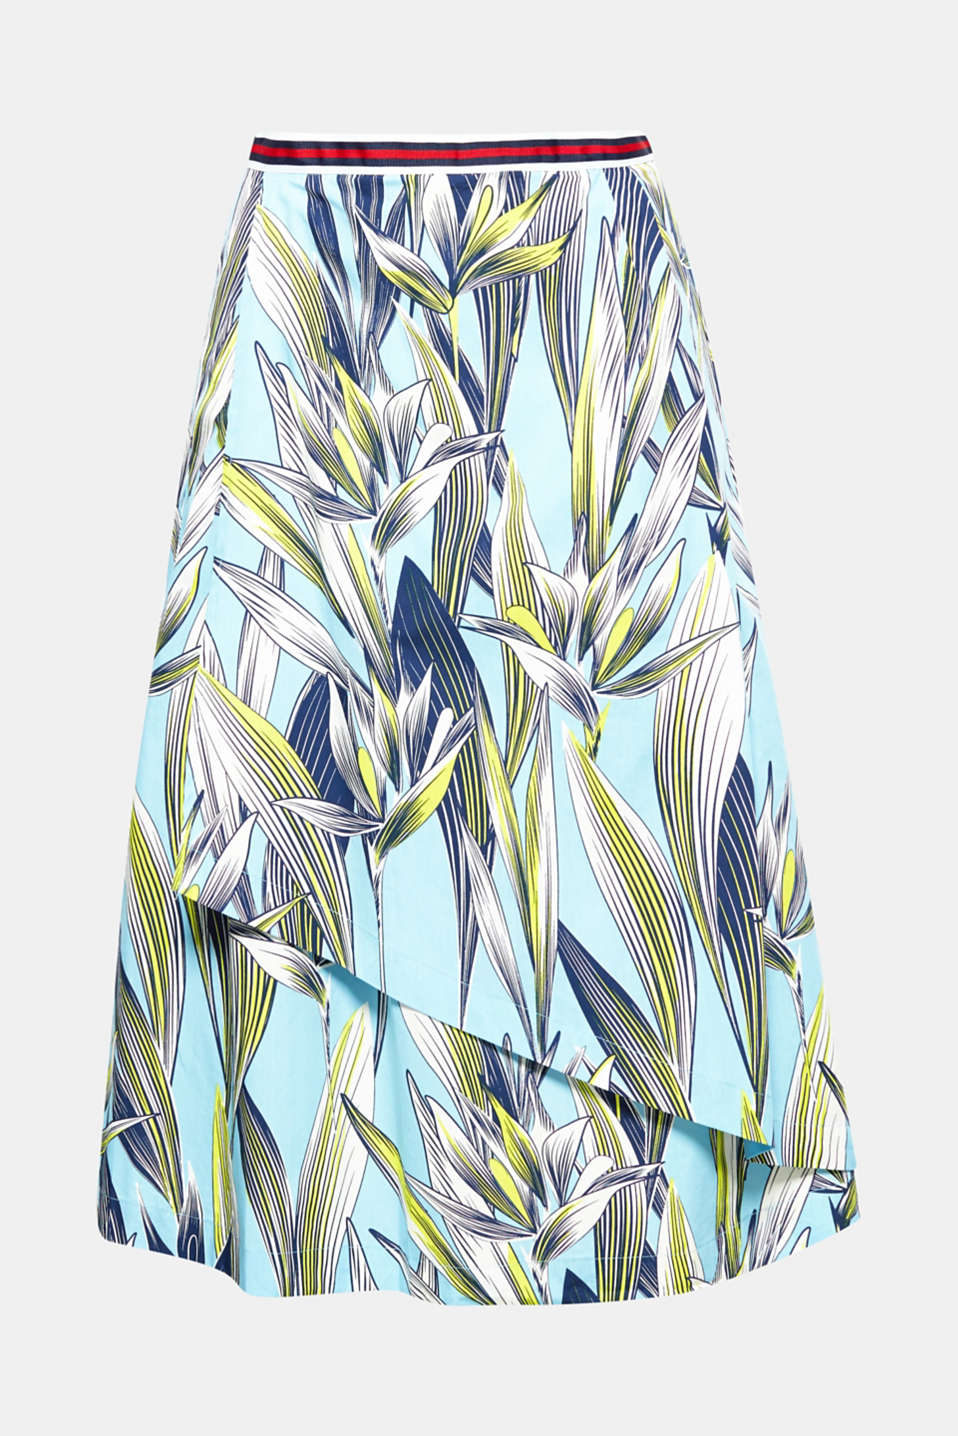 A breath of fresh air: This slightly flared skirt in pure cotton with a grass pattern is the perfect summer piece!